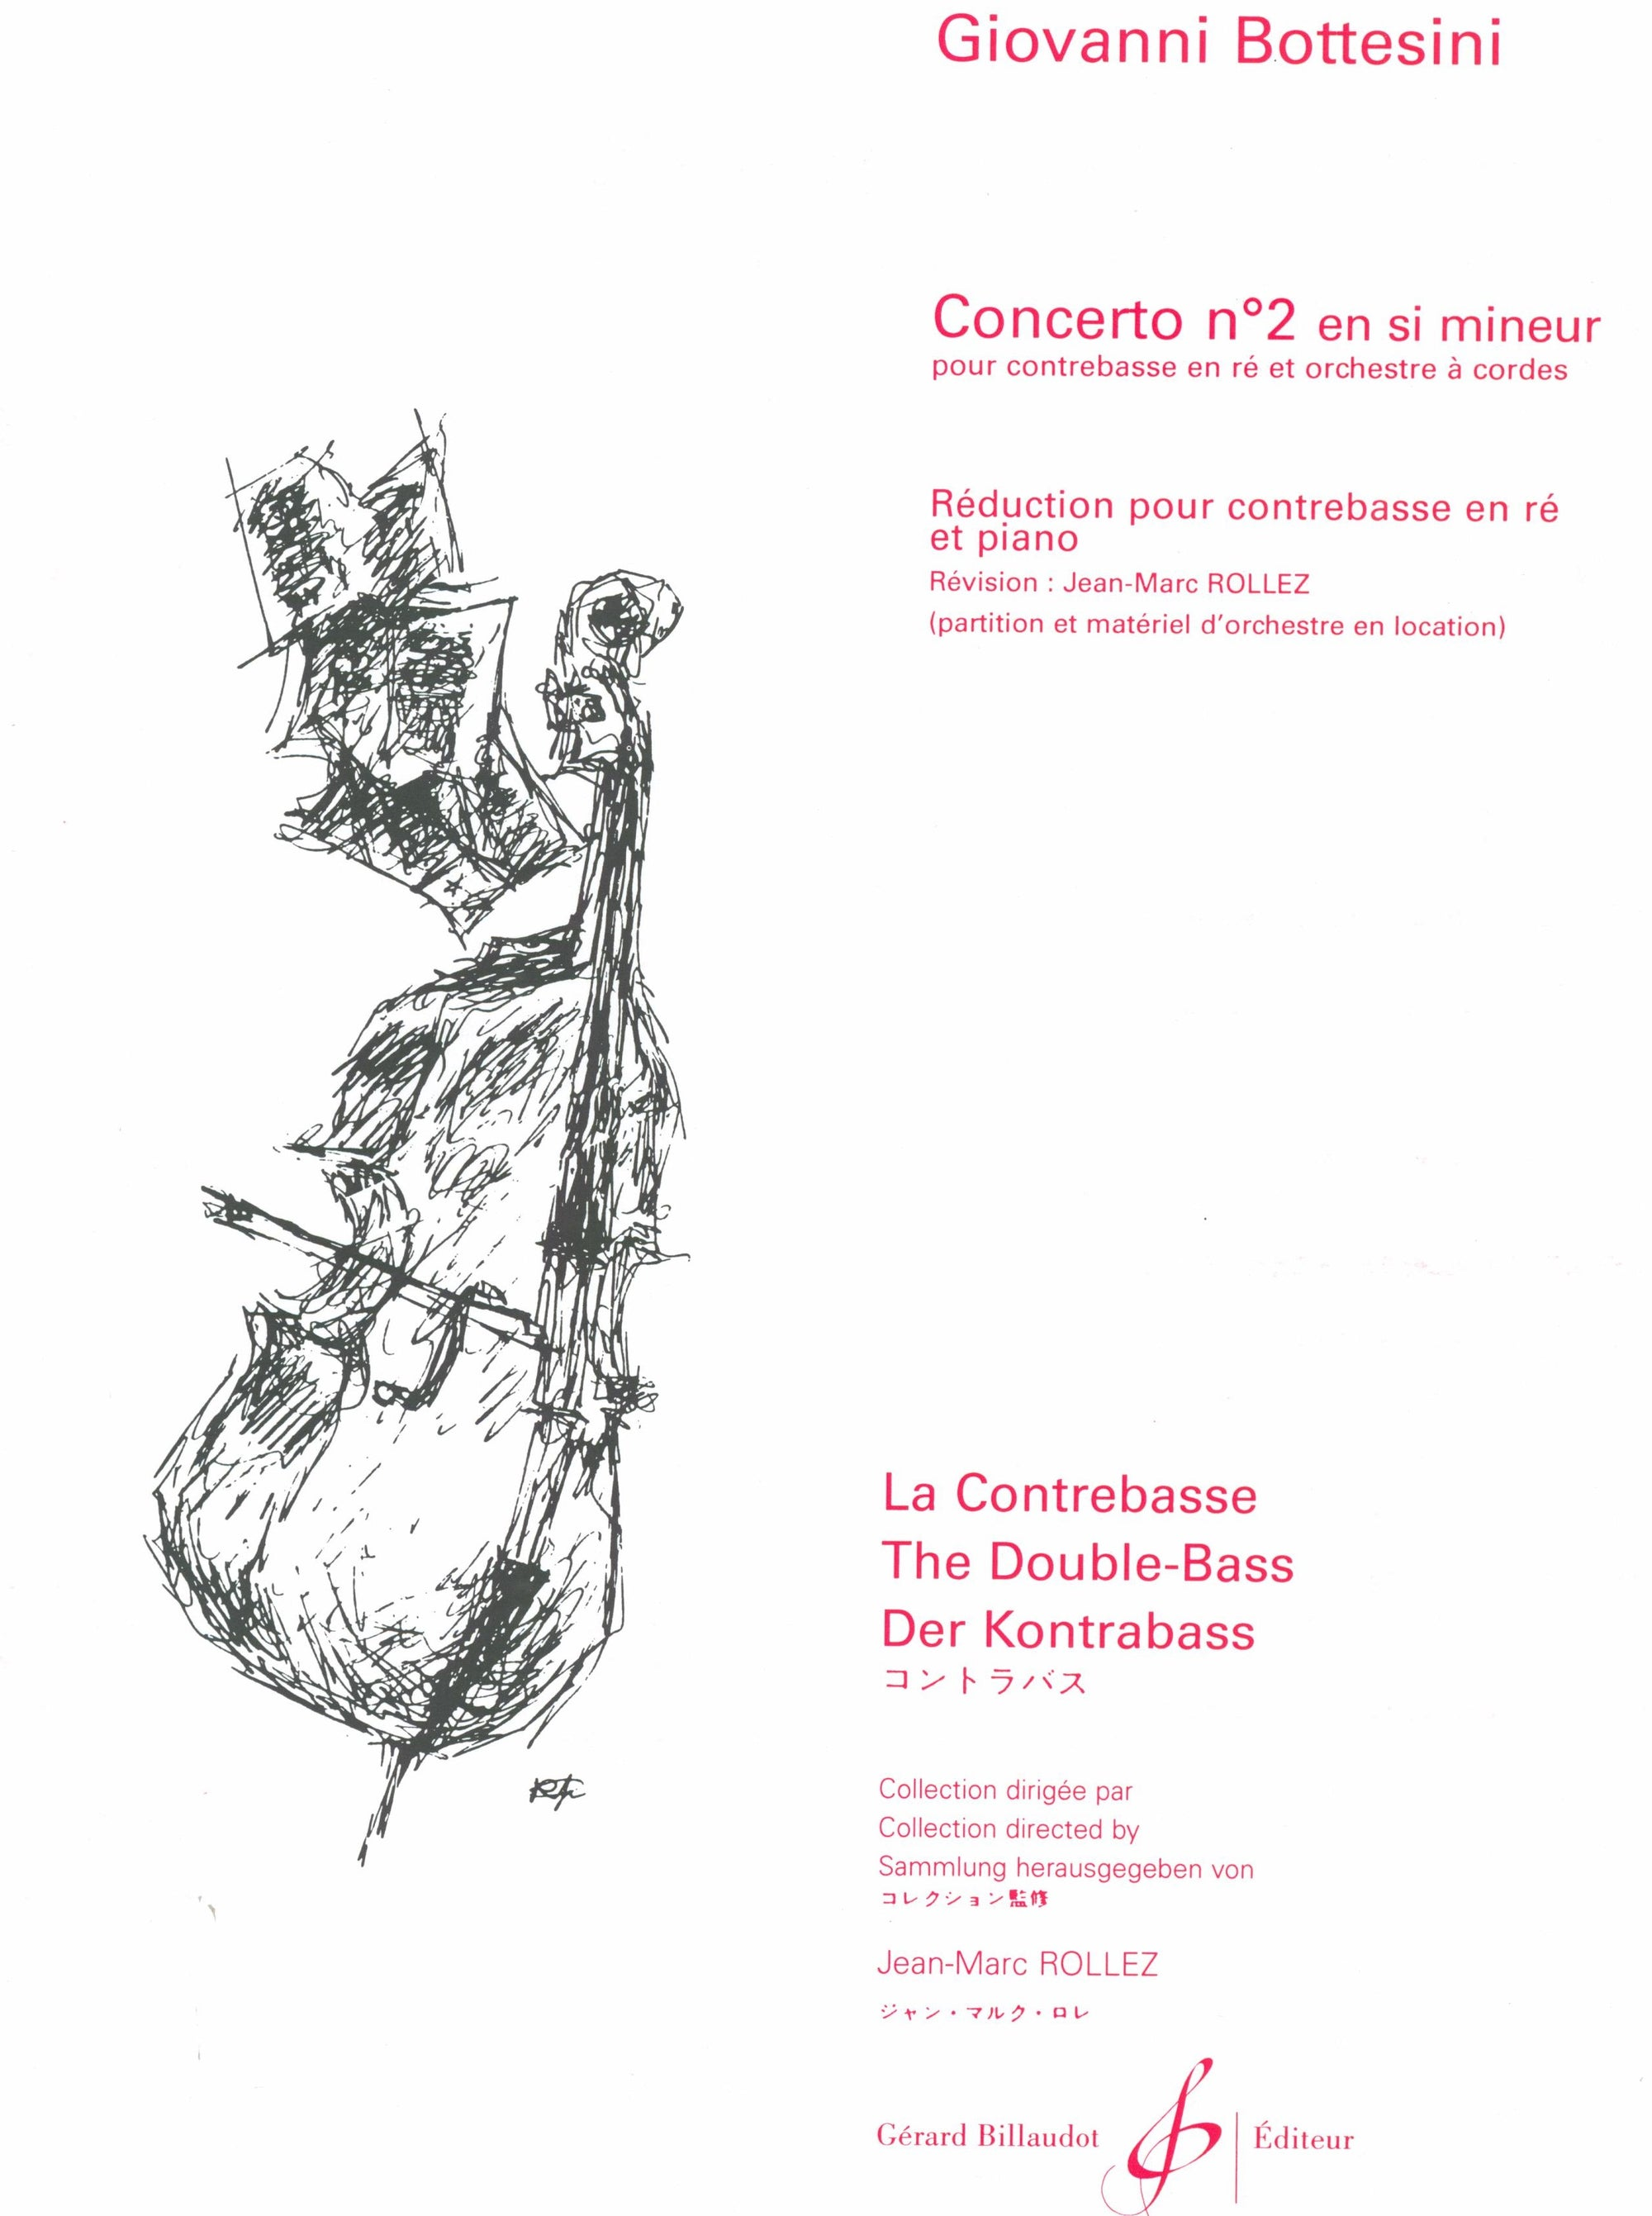 Bottesini: Double Bass Concerto No. 2 in B Minor